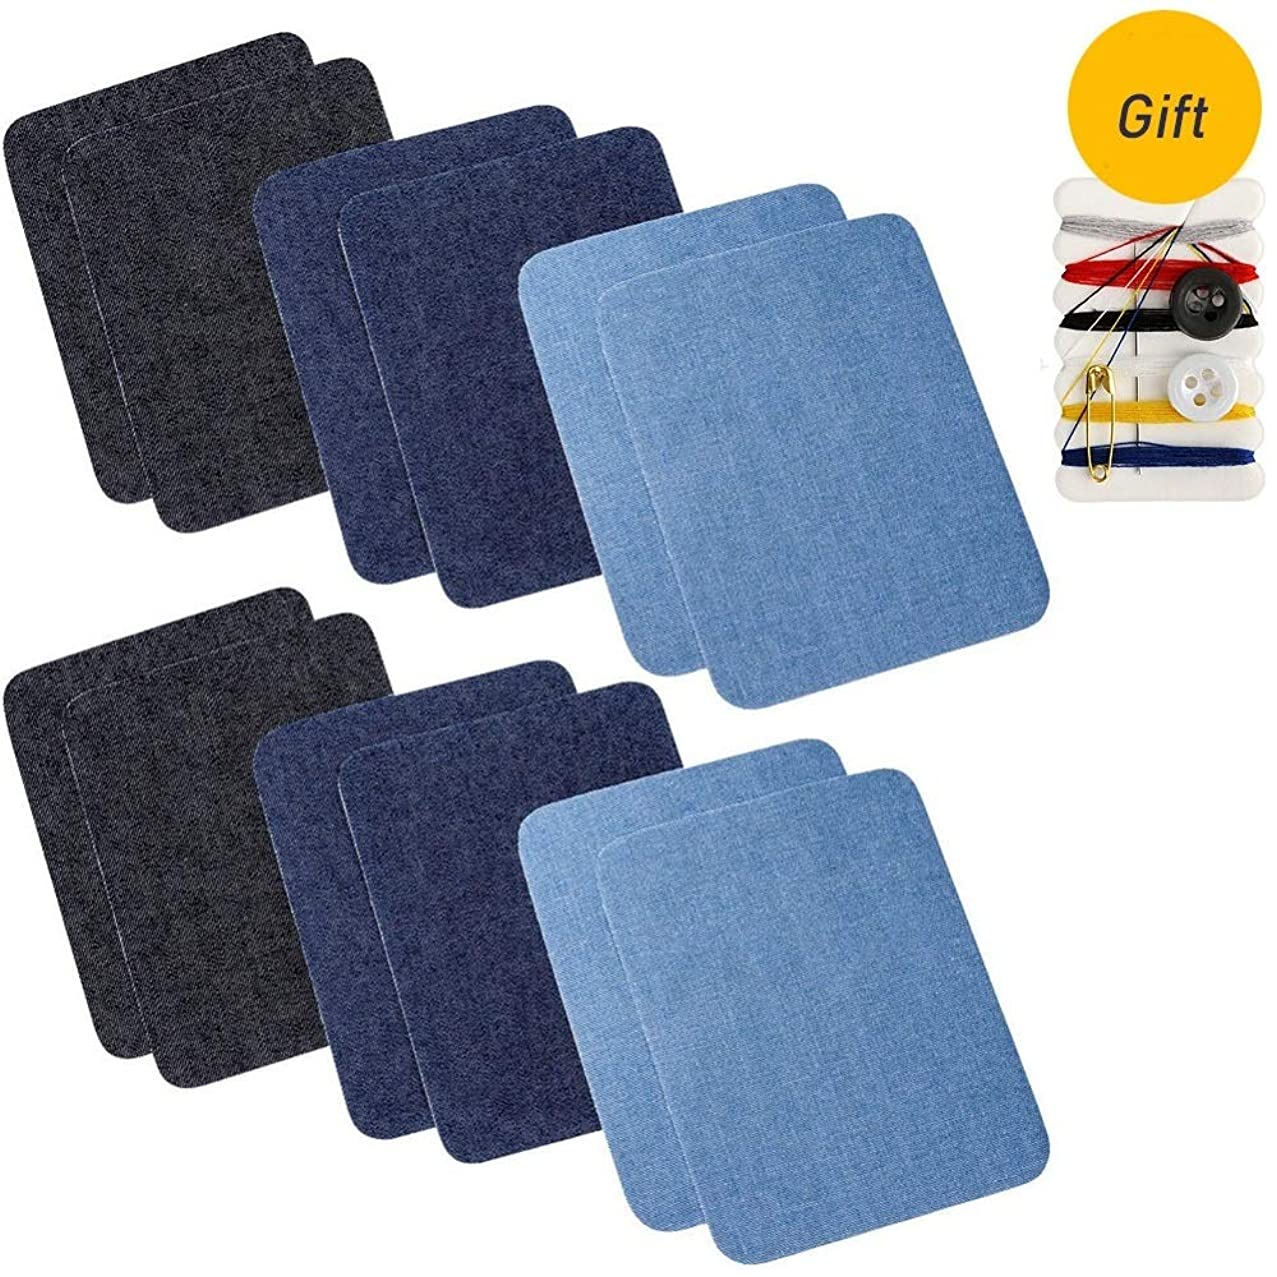 20pcs Iron on Denim Patches Fabric Patches for Clothing Jeans, Iron on Repair Kit, 10 Colors(4.9